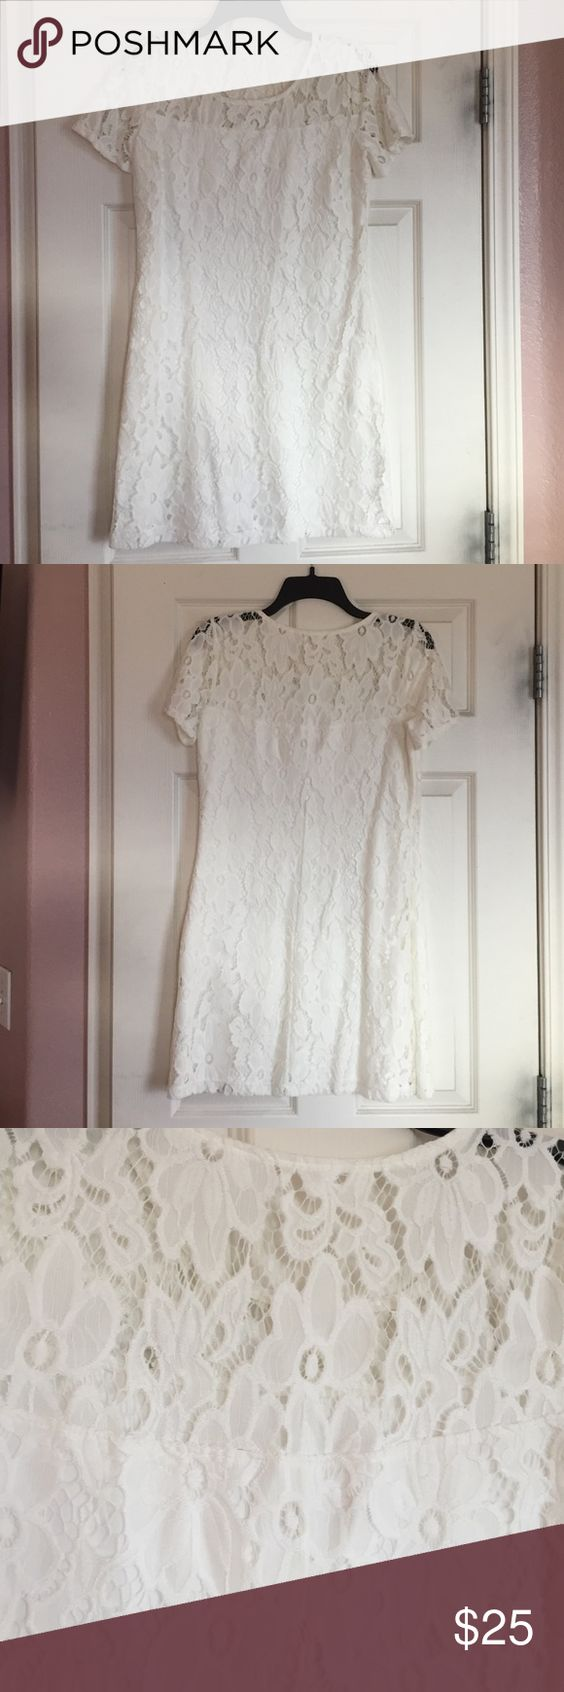 White Lace Dress Perfect condition, only work once! Ends a few inches above the knee Hollister Dresses Midi